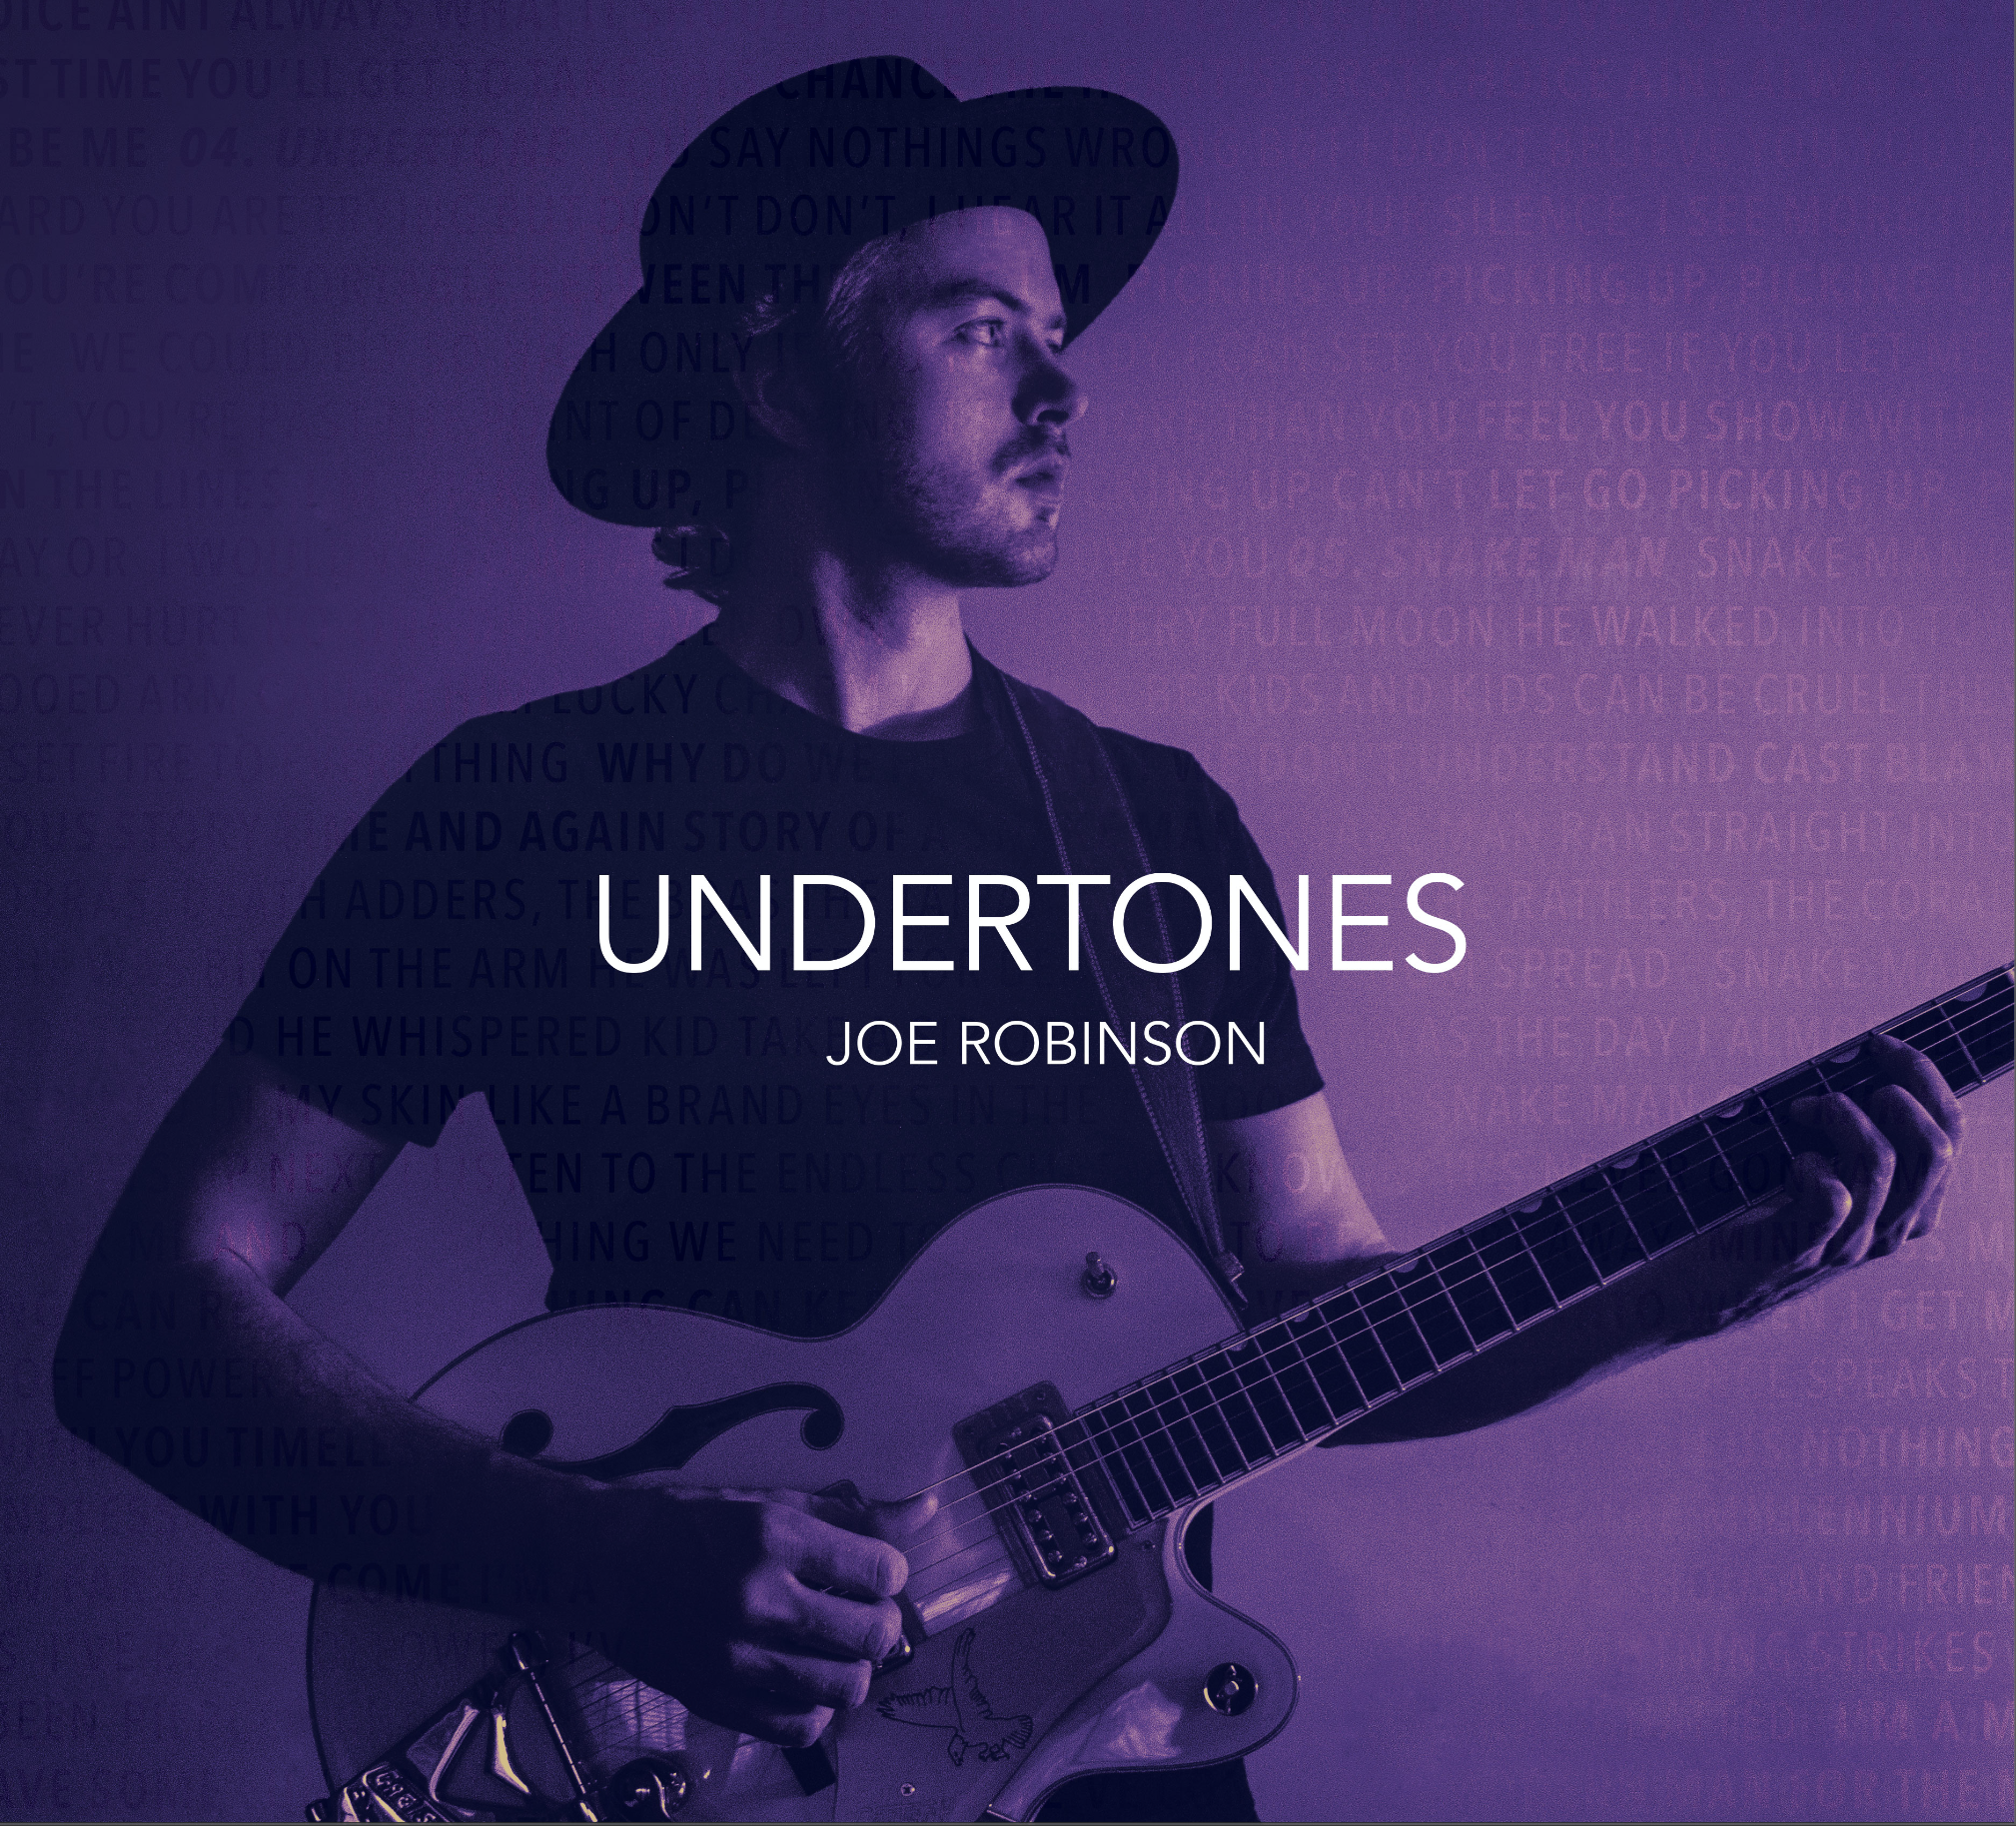 JR_19_Undertones_Cover_web.jpg